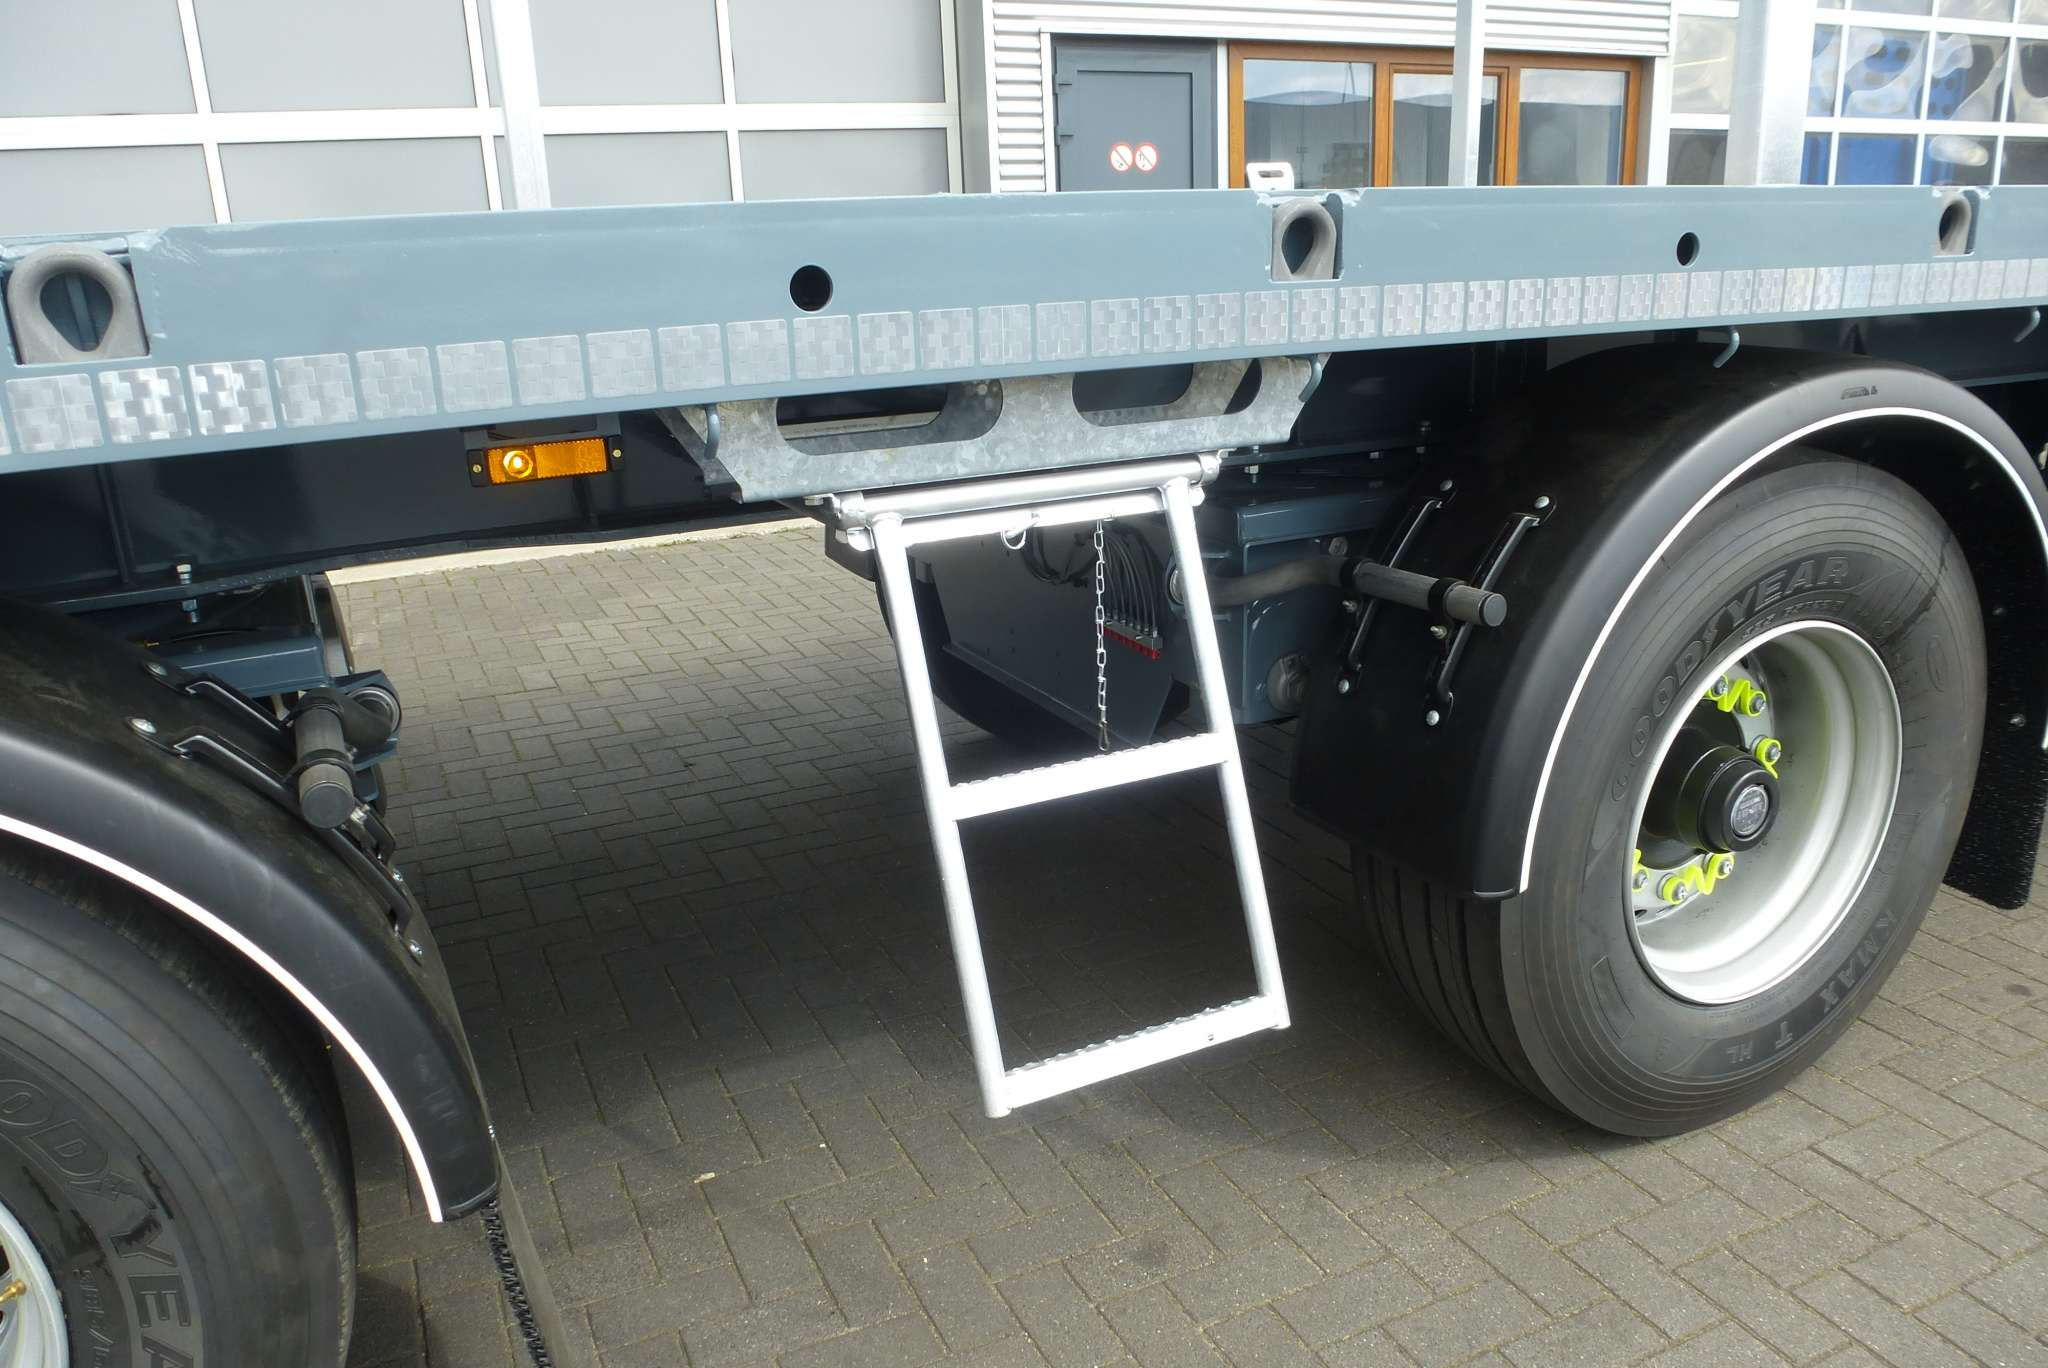 CITY TRAILER // 2 AXLES STEERED // 29,5 TONS PAYLOAD